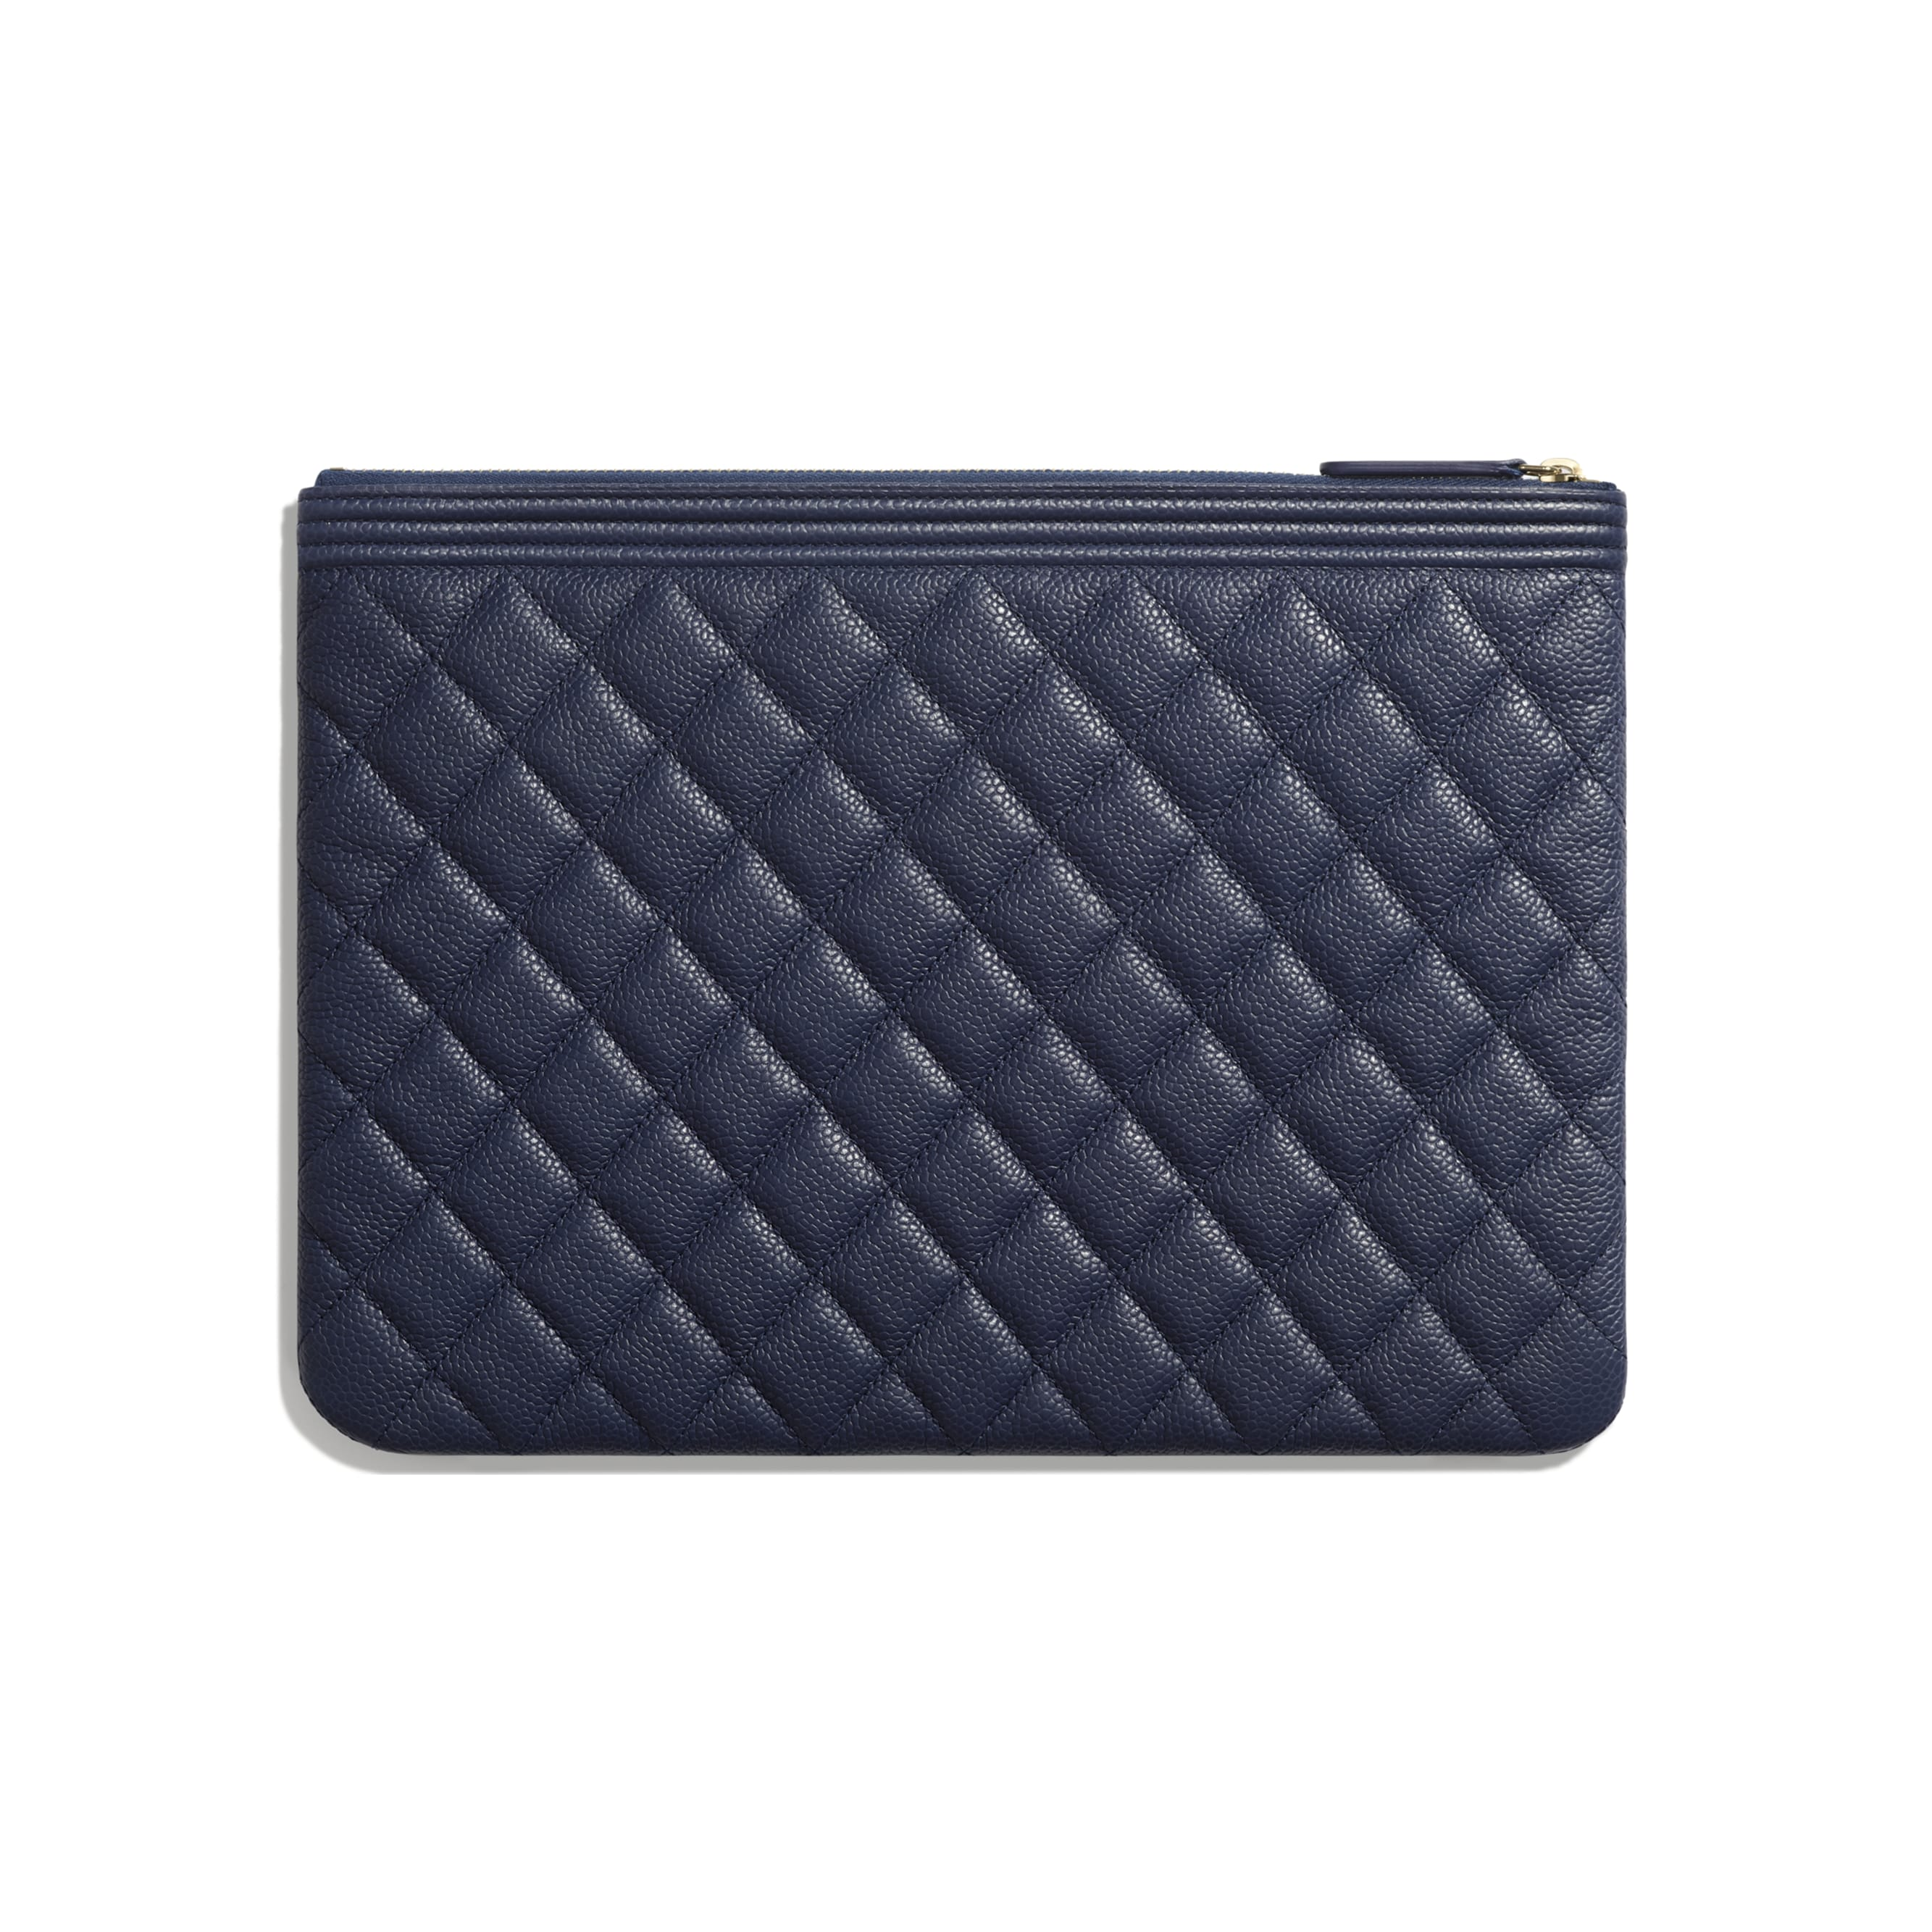 BOY CHANEL Pouch - Navy Blue - Grained Calfskin & Gold-Tone Metal - Alternative view - see standard sized version